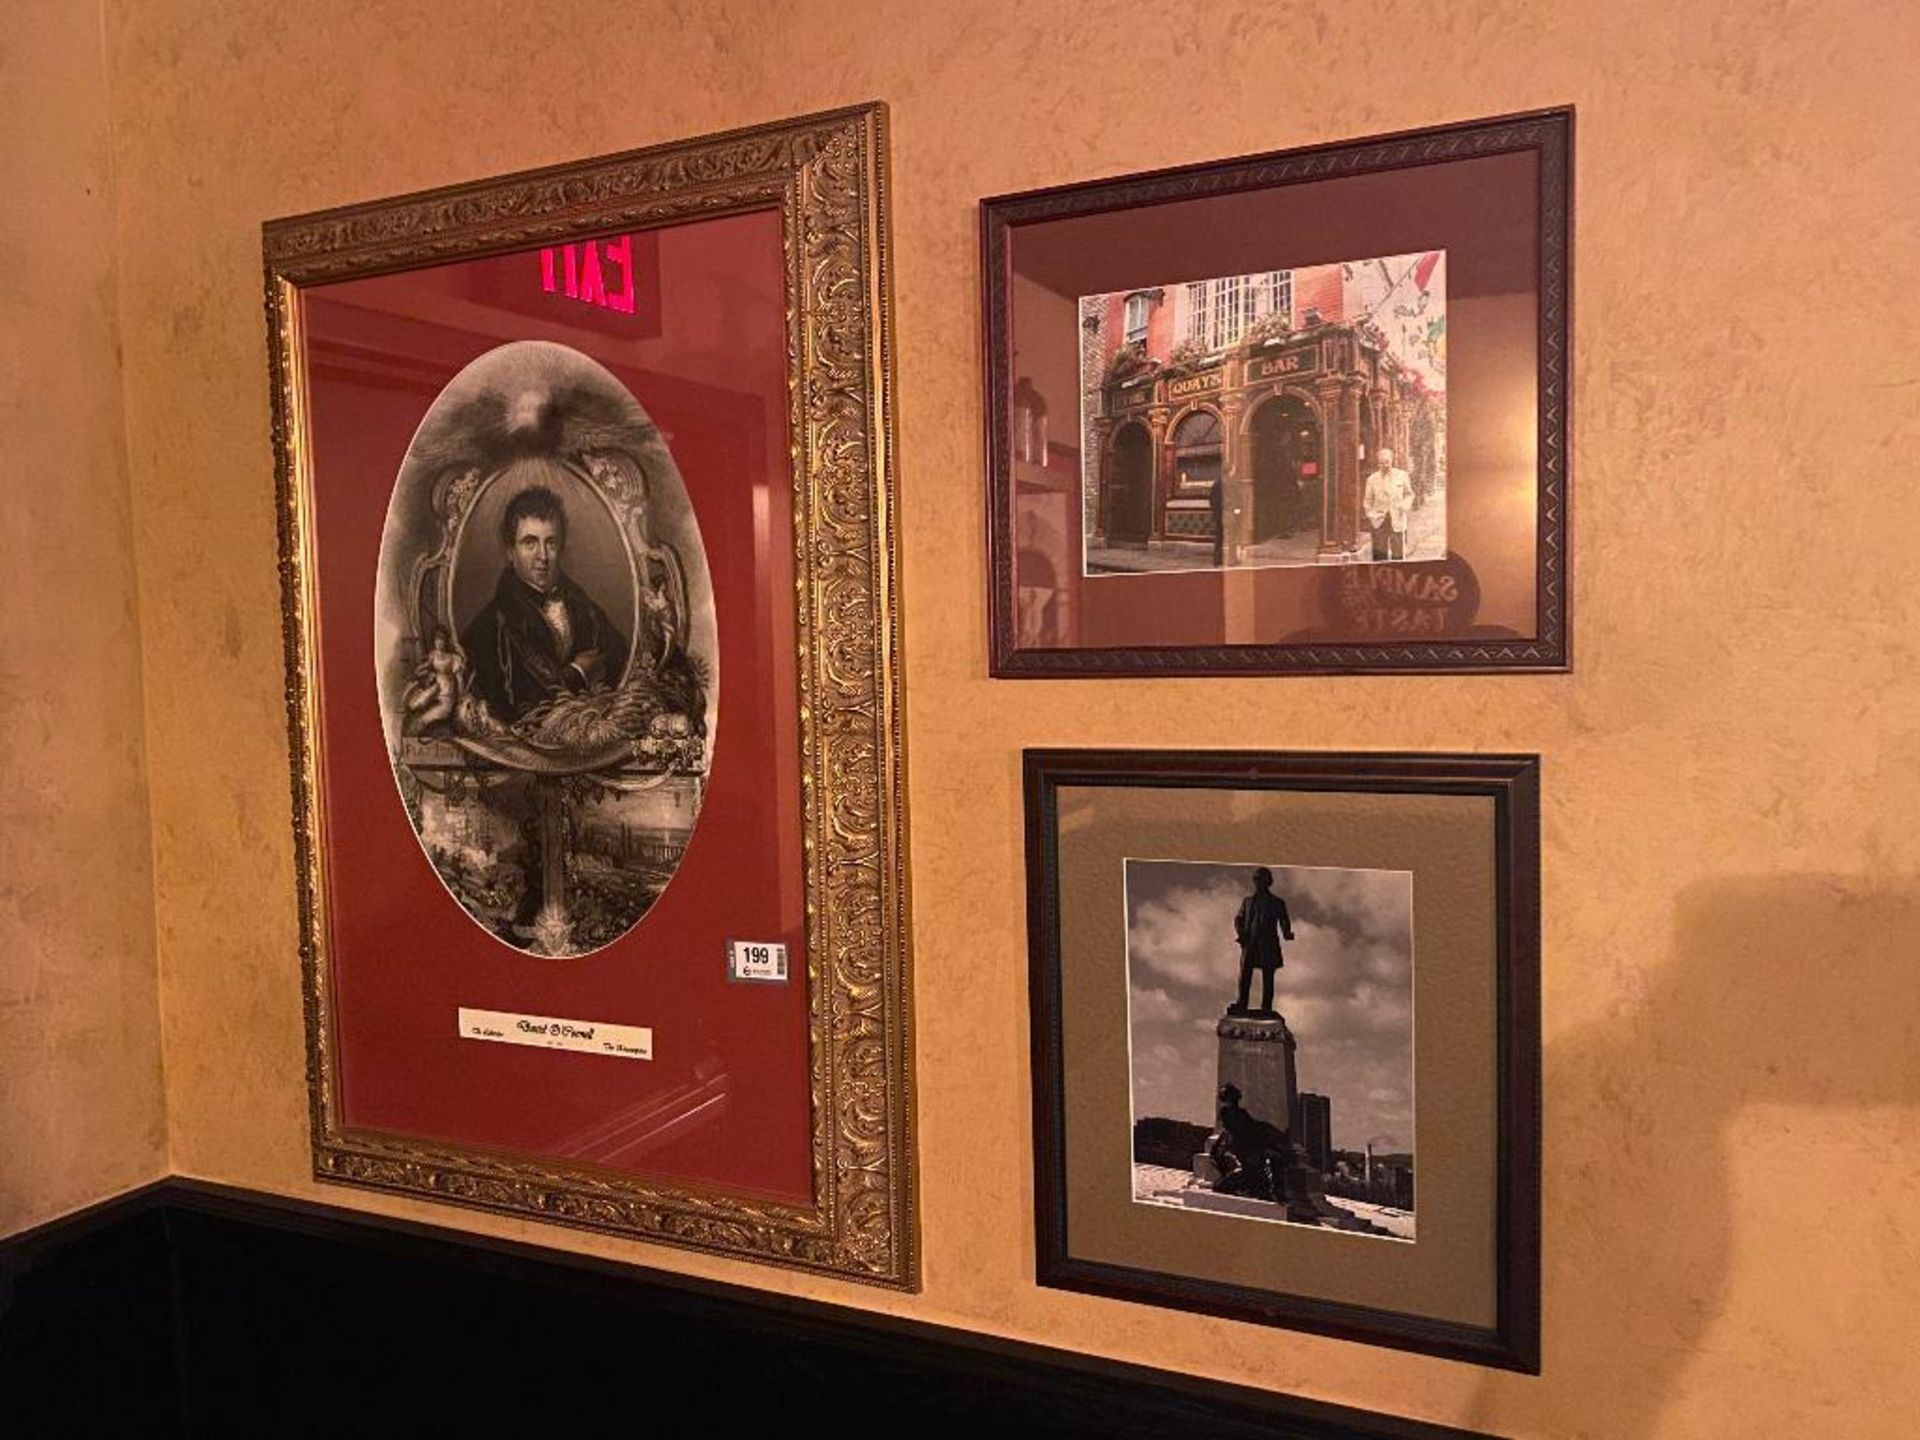 LOT OF (3) FRAMED MEMORABILIA PHOTOS - NOTE: REQUIRES REMOVAL FROM WALL, PLEASE INSPECT